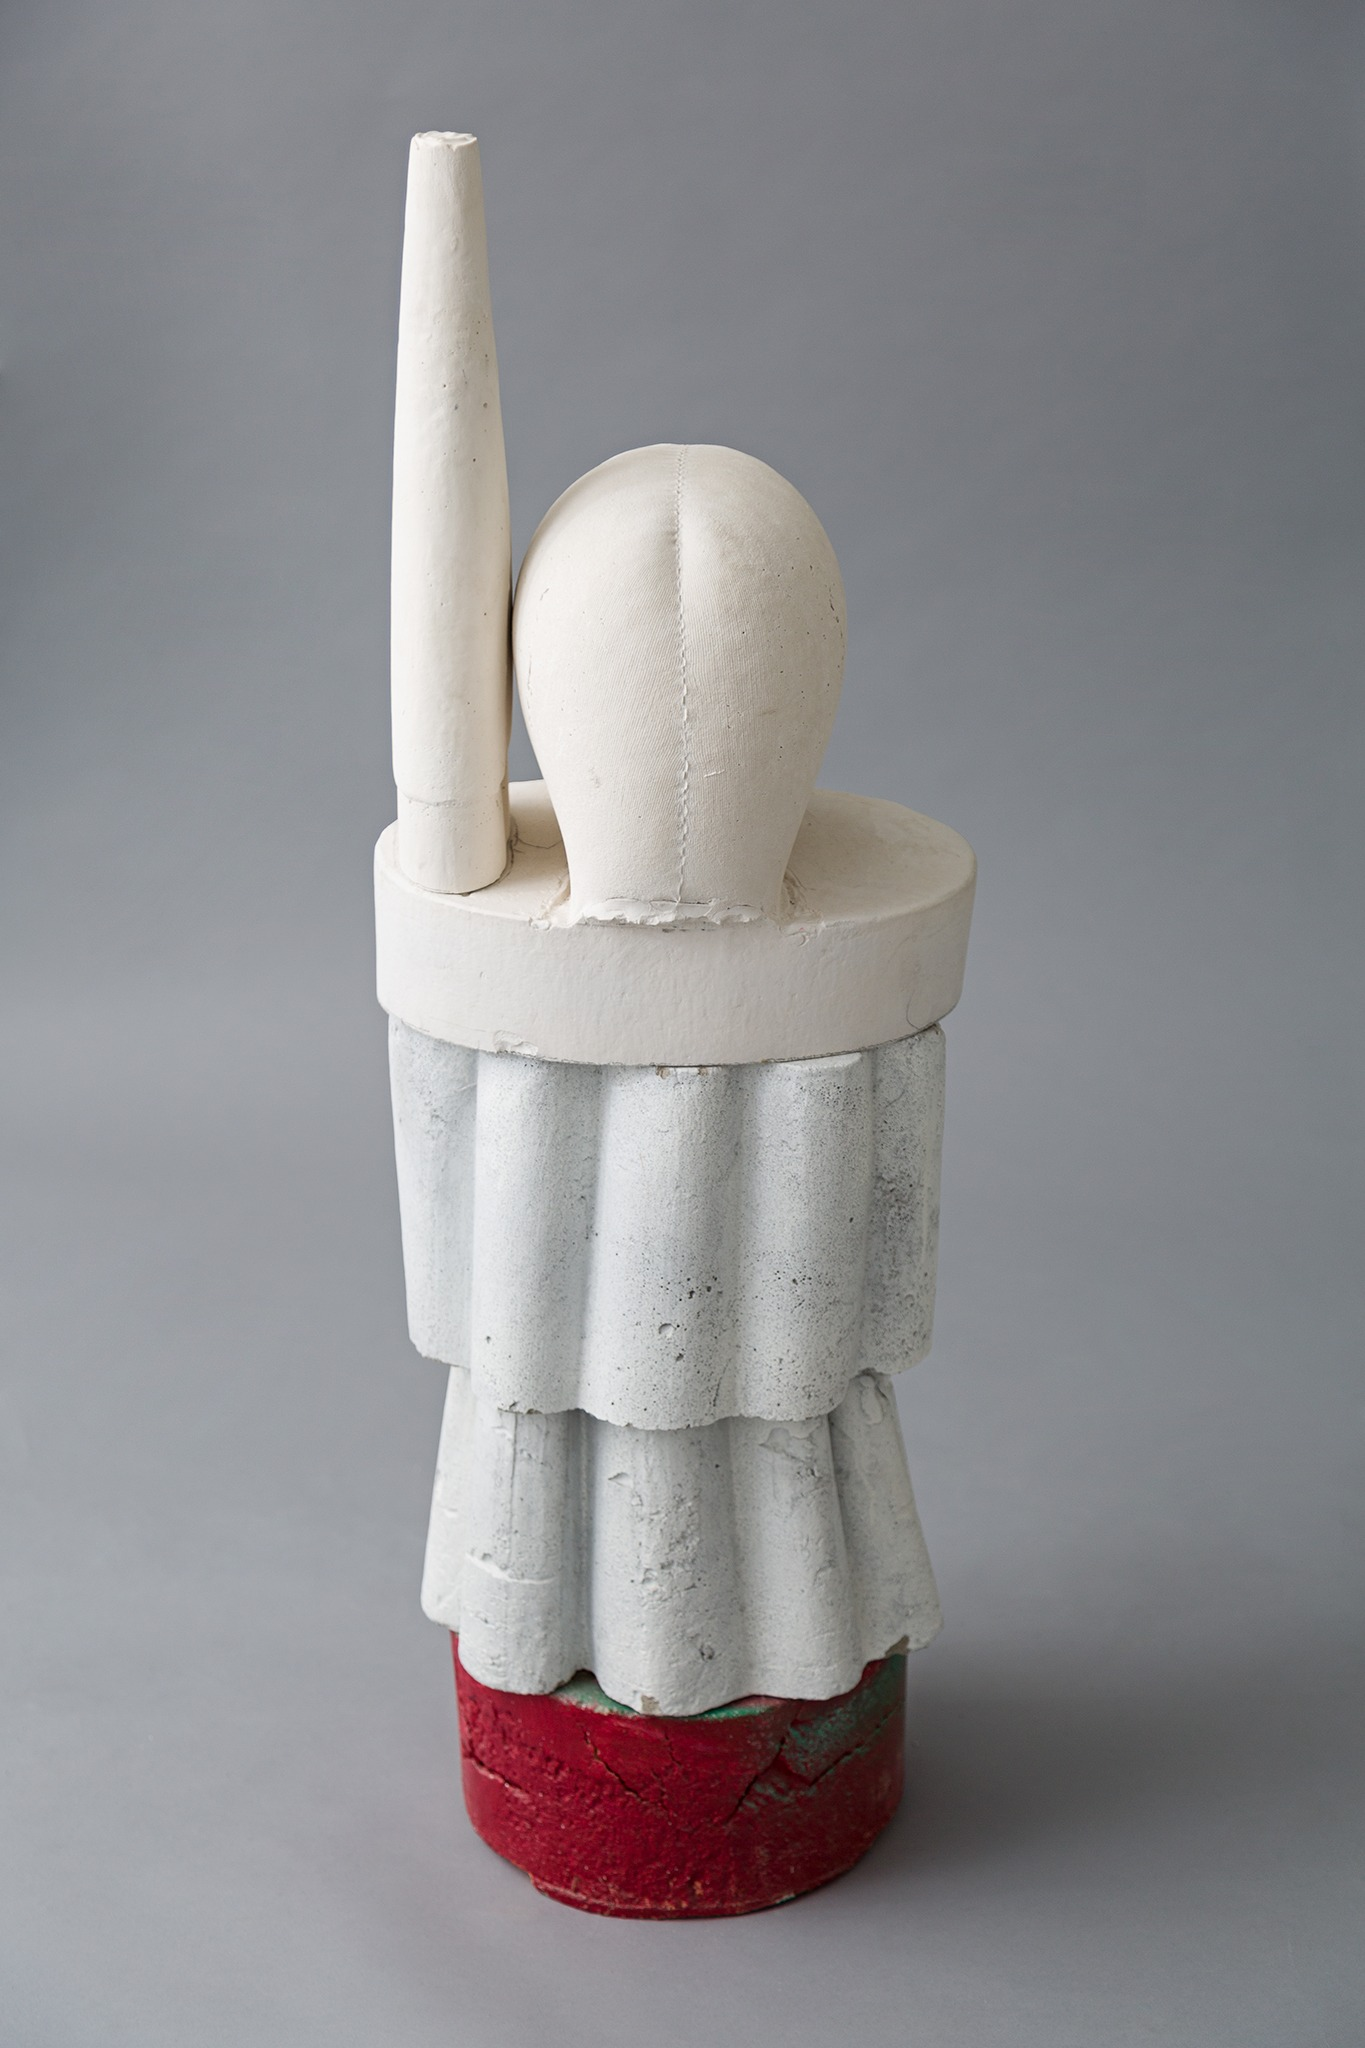 Mike Goodlett, Untitled, 2019, Concrete and Hydrostone with oil-based enamel, 36 x 12 inches